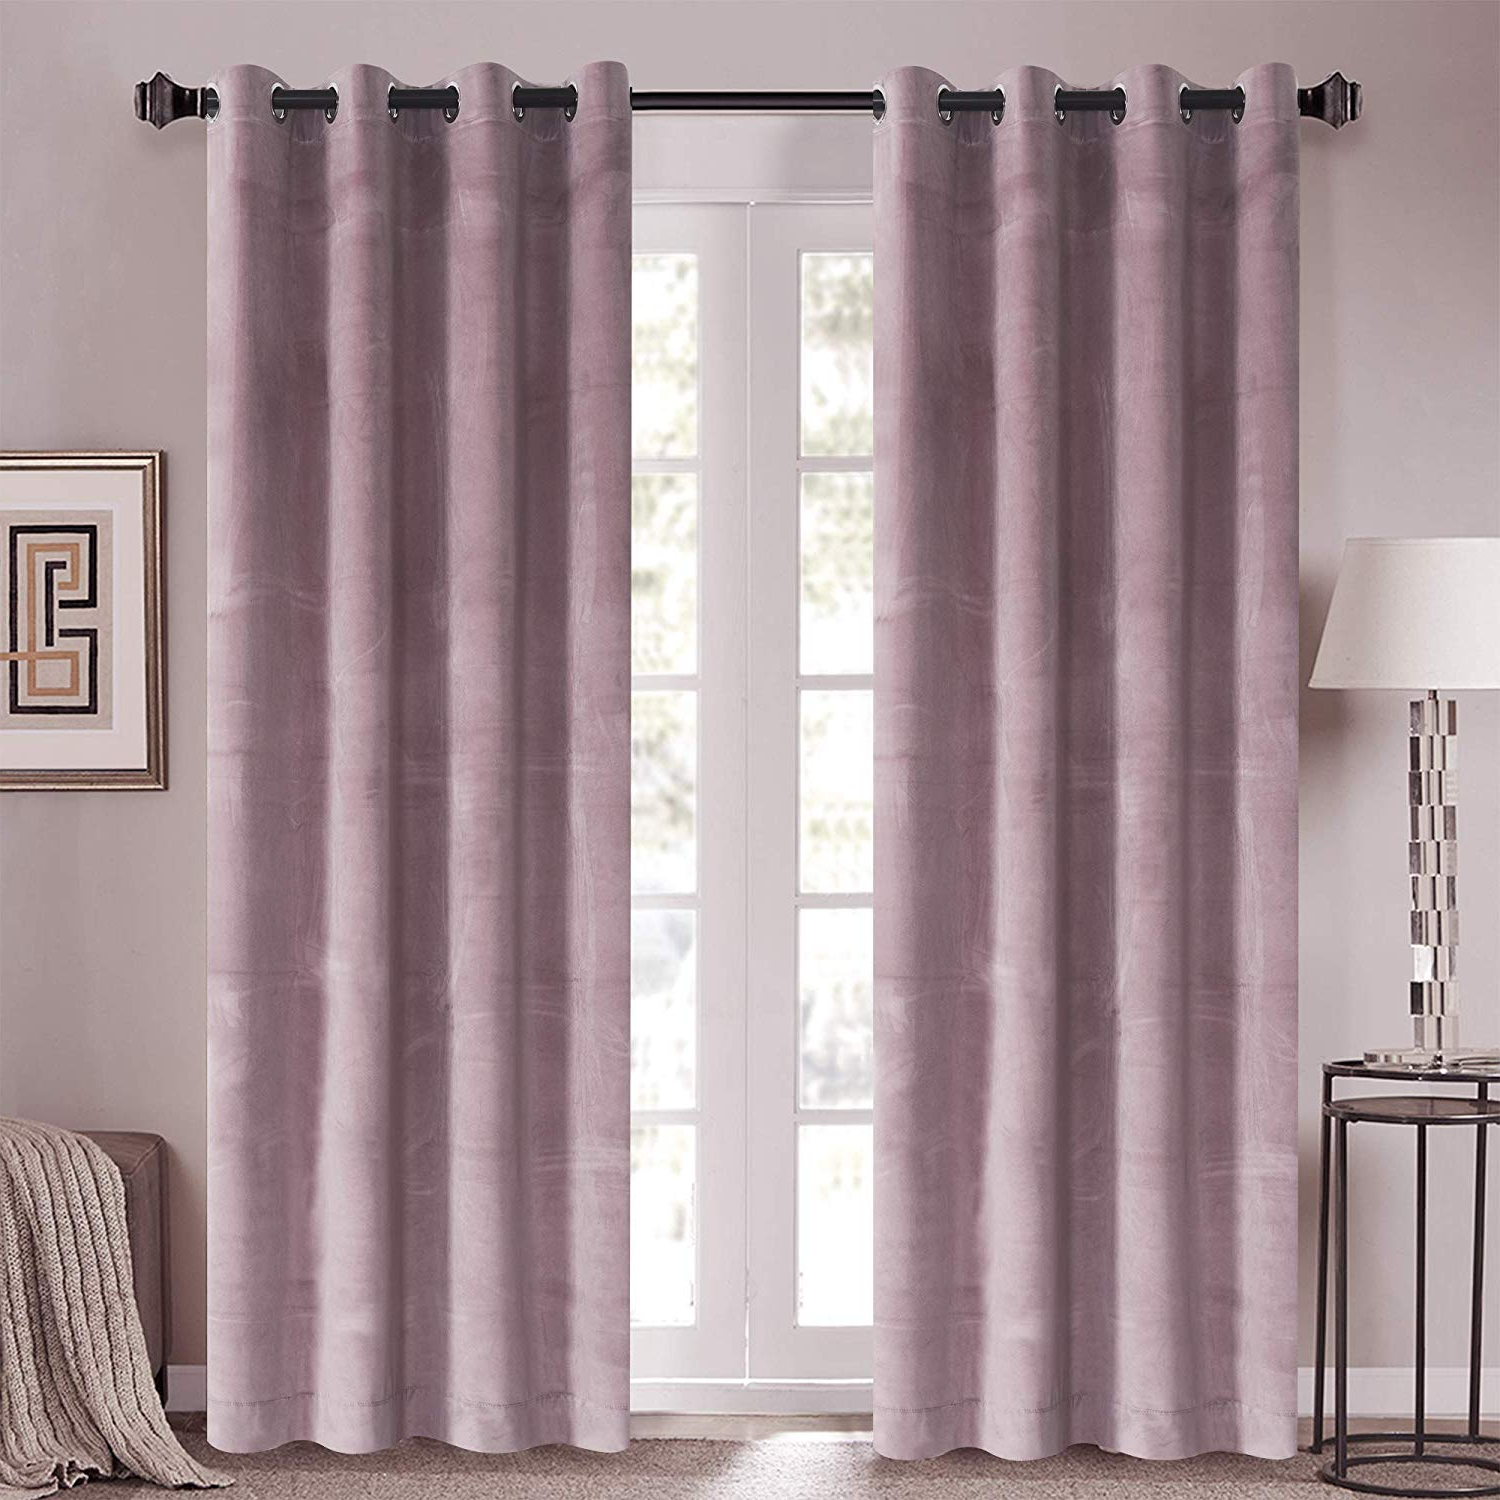 "Roslynwood Sakura Pink Velvet Drapes Solid Room Darkening Rod Pocket Window Curtain Panel Pair Red Wine, 50"" X 84"" Rod Pocket For Latest Velvet Dream Silver Curtain Panel Pairs (View 7 of 20)"